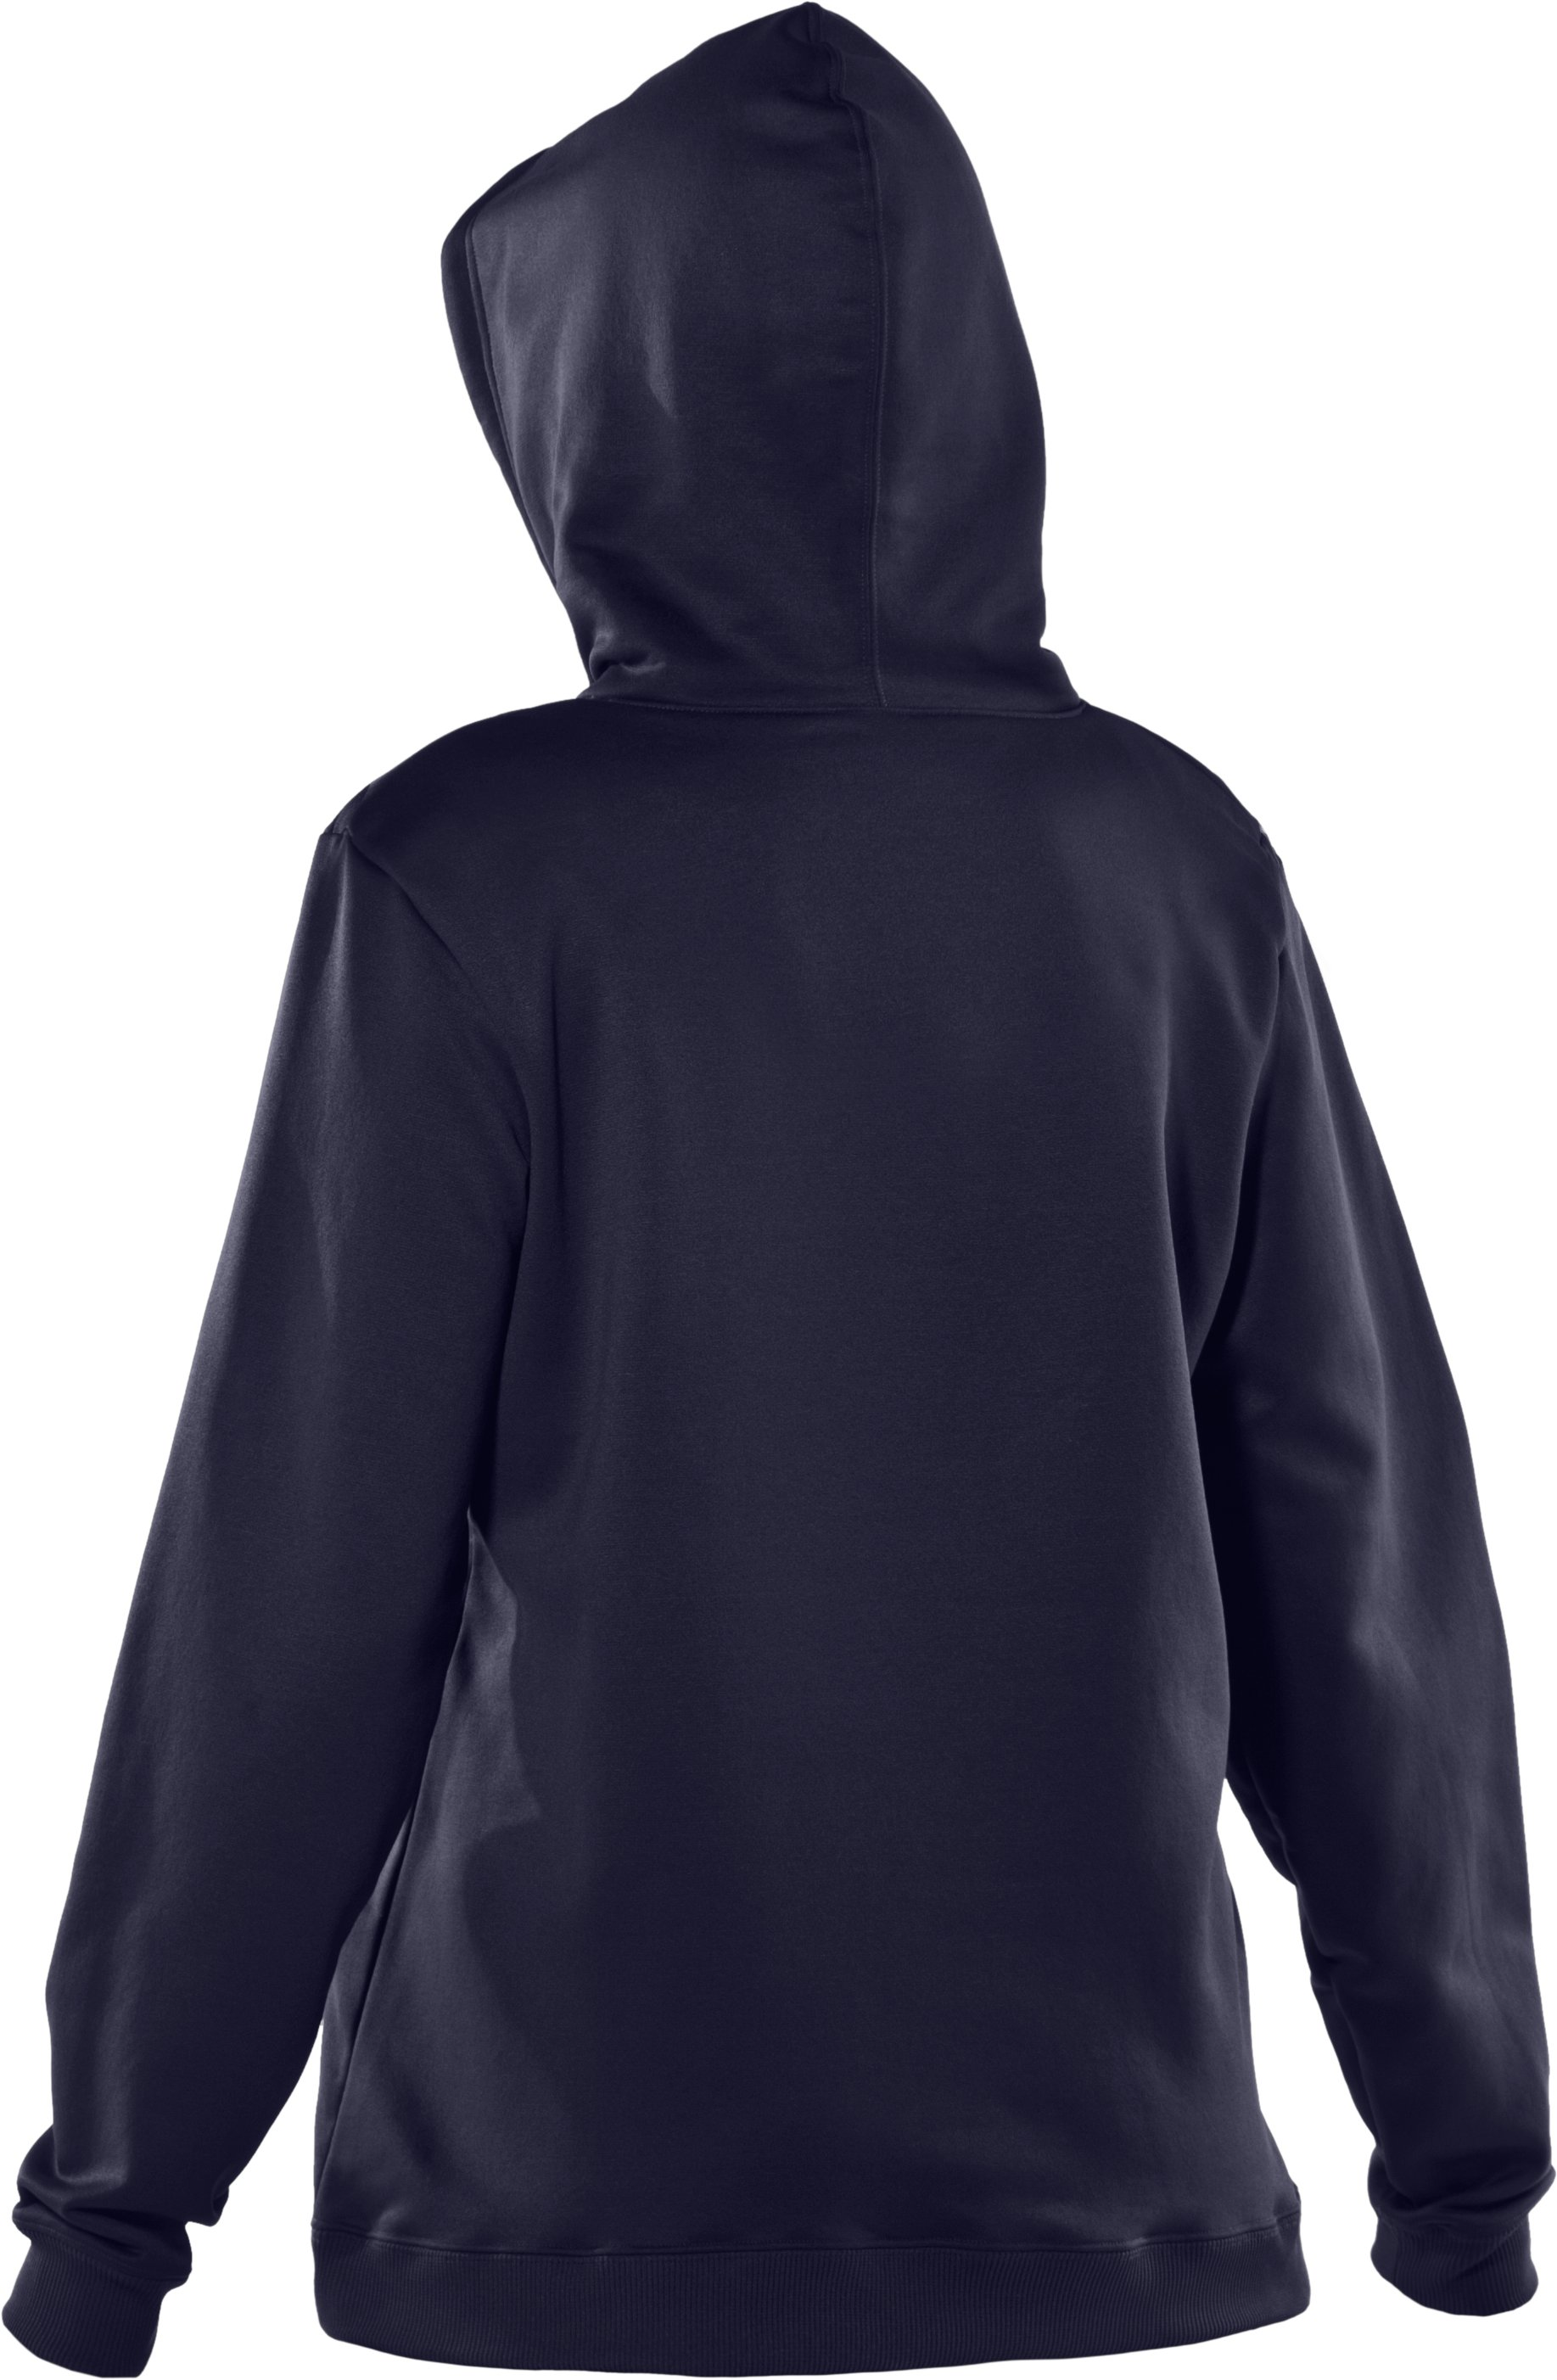 Women's Armour® Fleece Team Hoodie, Midnight Navy, undefined